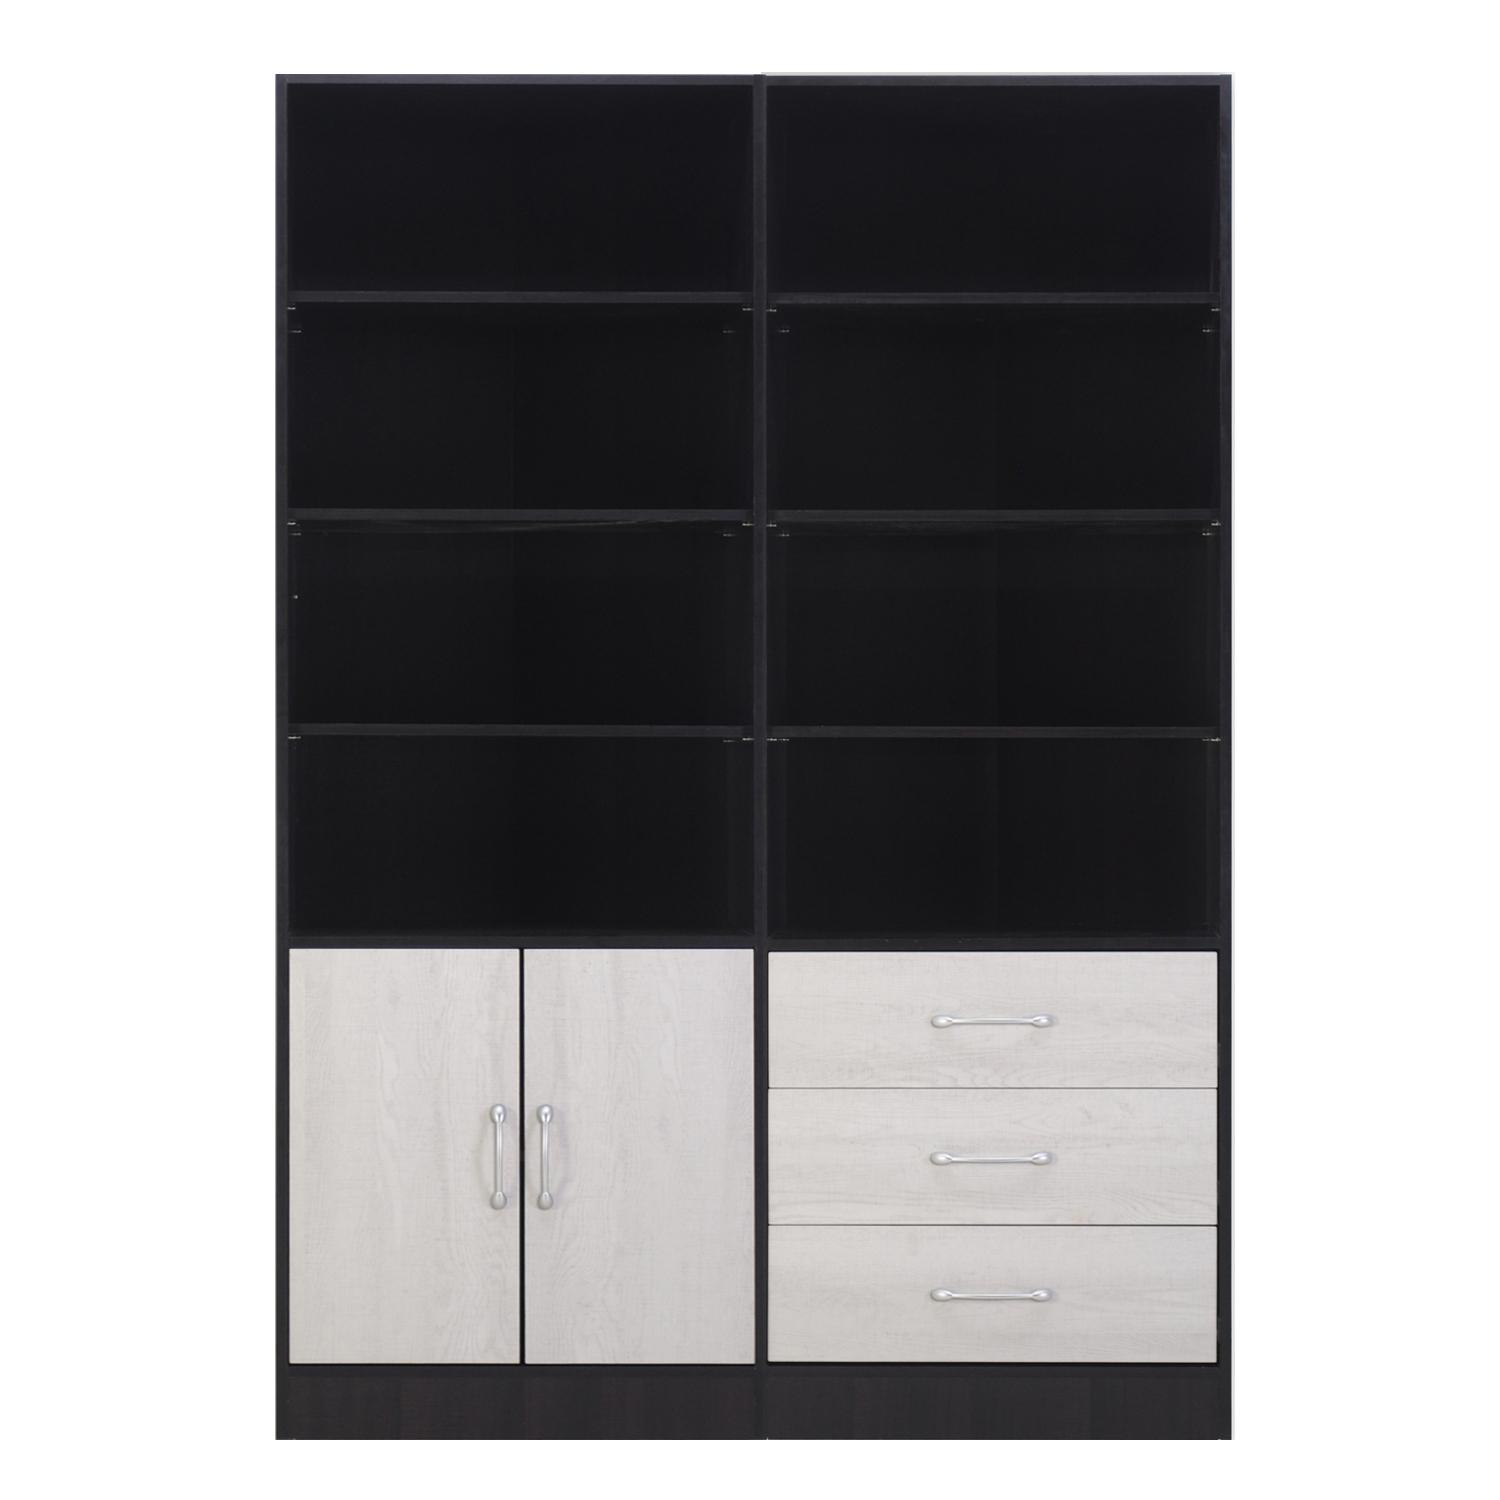 LIVING MALL_Rutna 3 Bookshelf_FREE DELIVERY